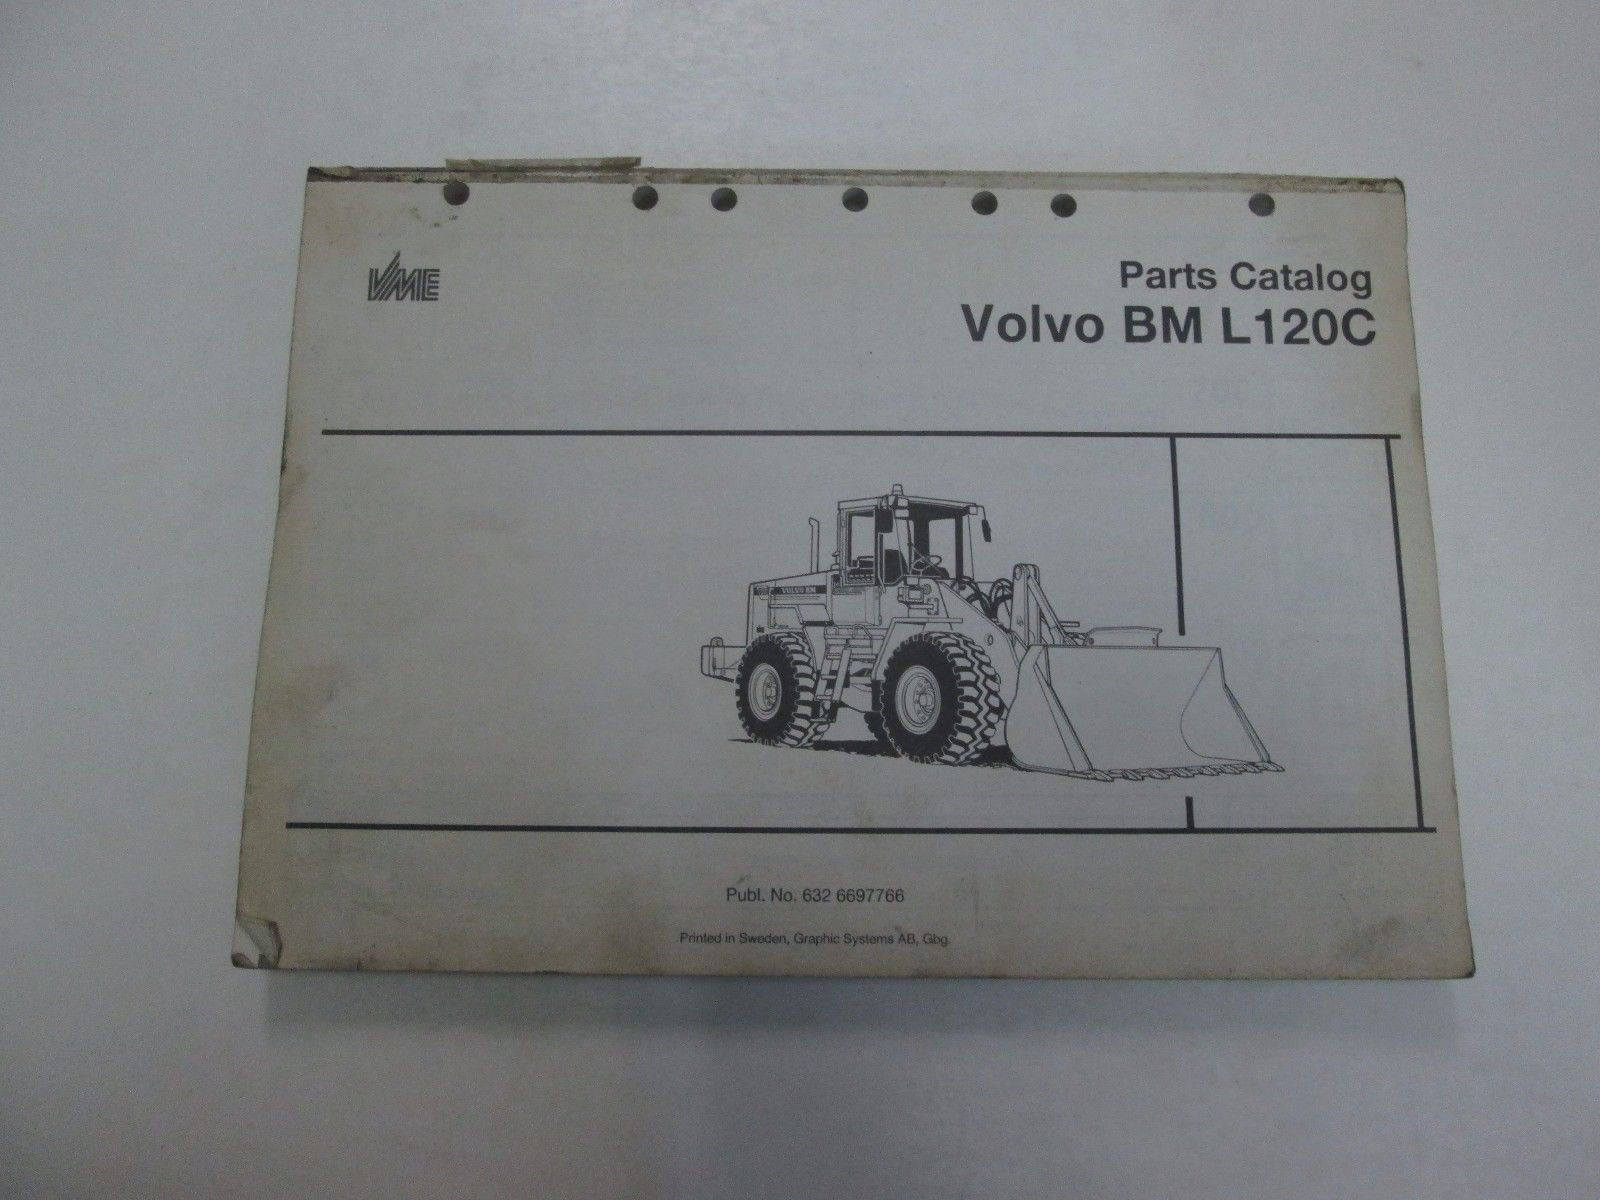 Volvo Hydraulic Pump 5 Listings 120c Wiring Diagram Bm L120c Parts Catalog Manual Missing Cover Stained Factory Oem Book Deal 5939